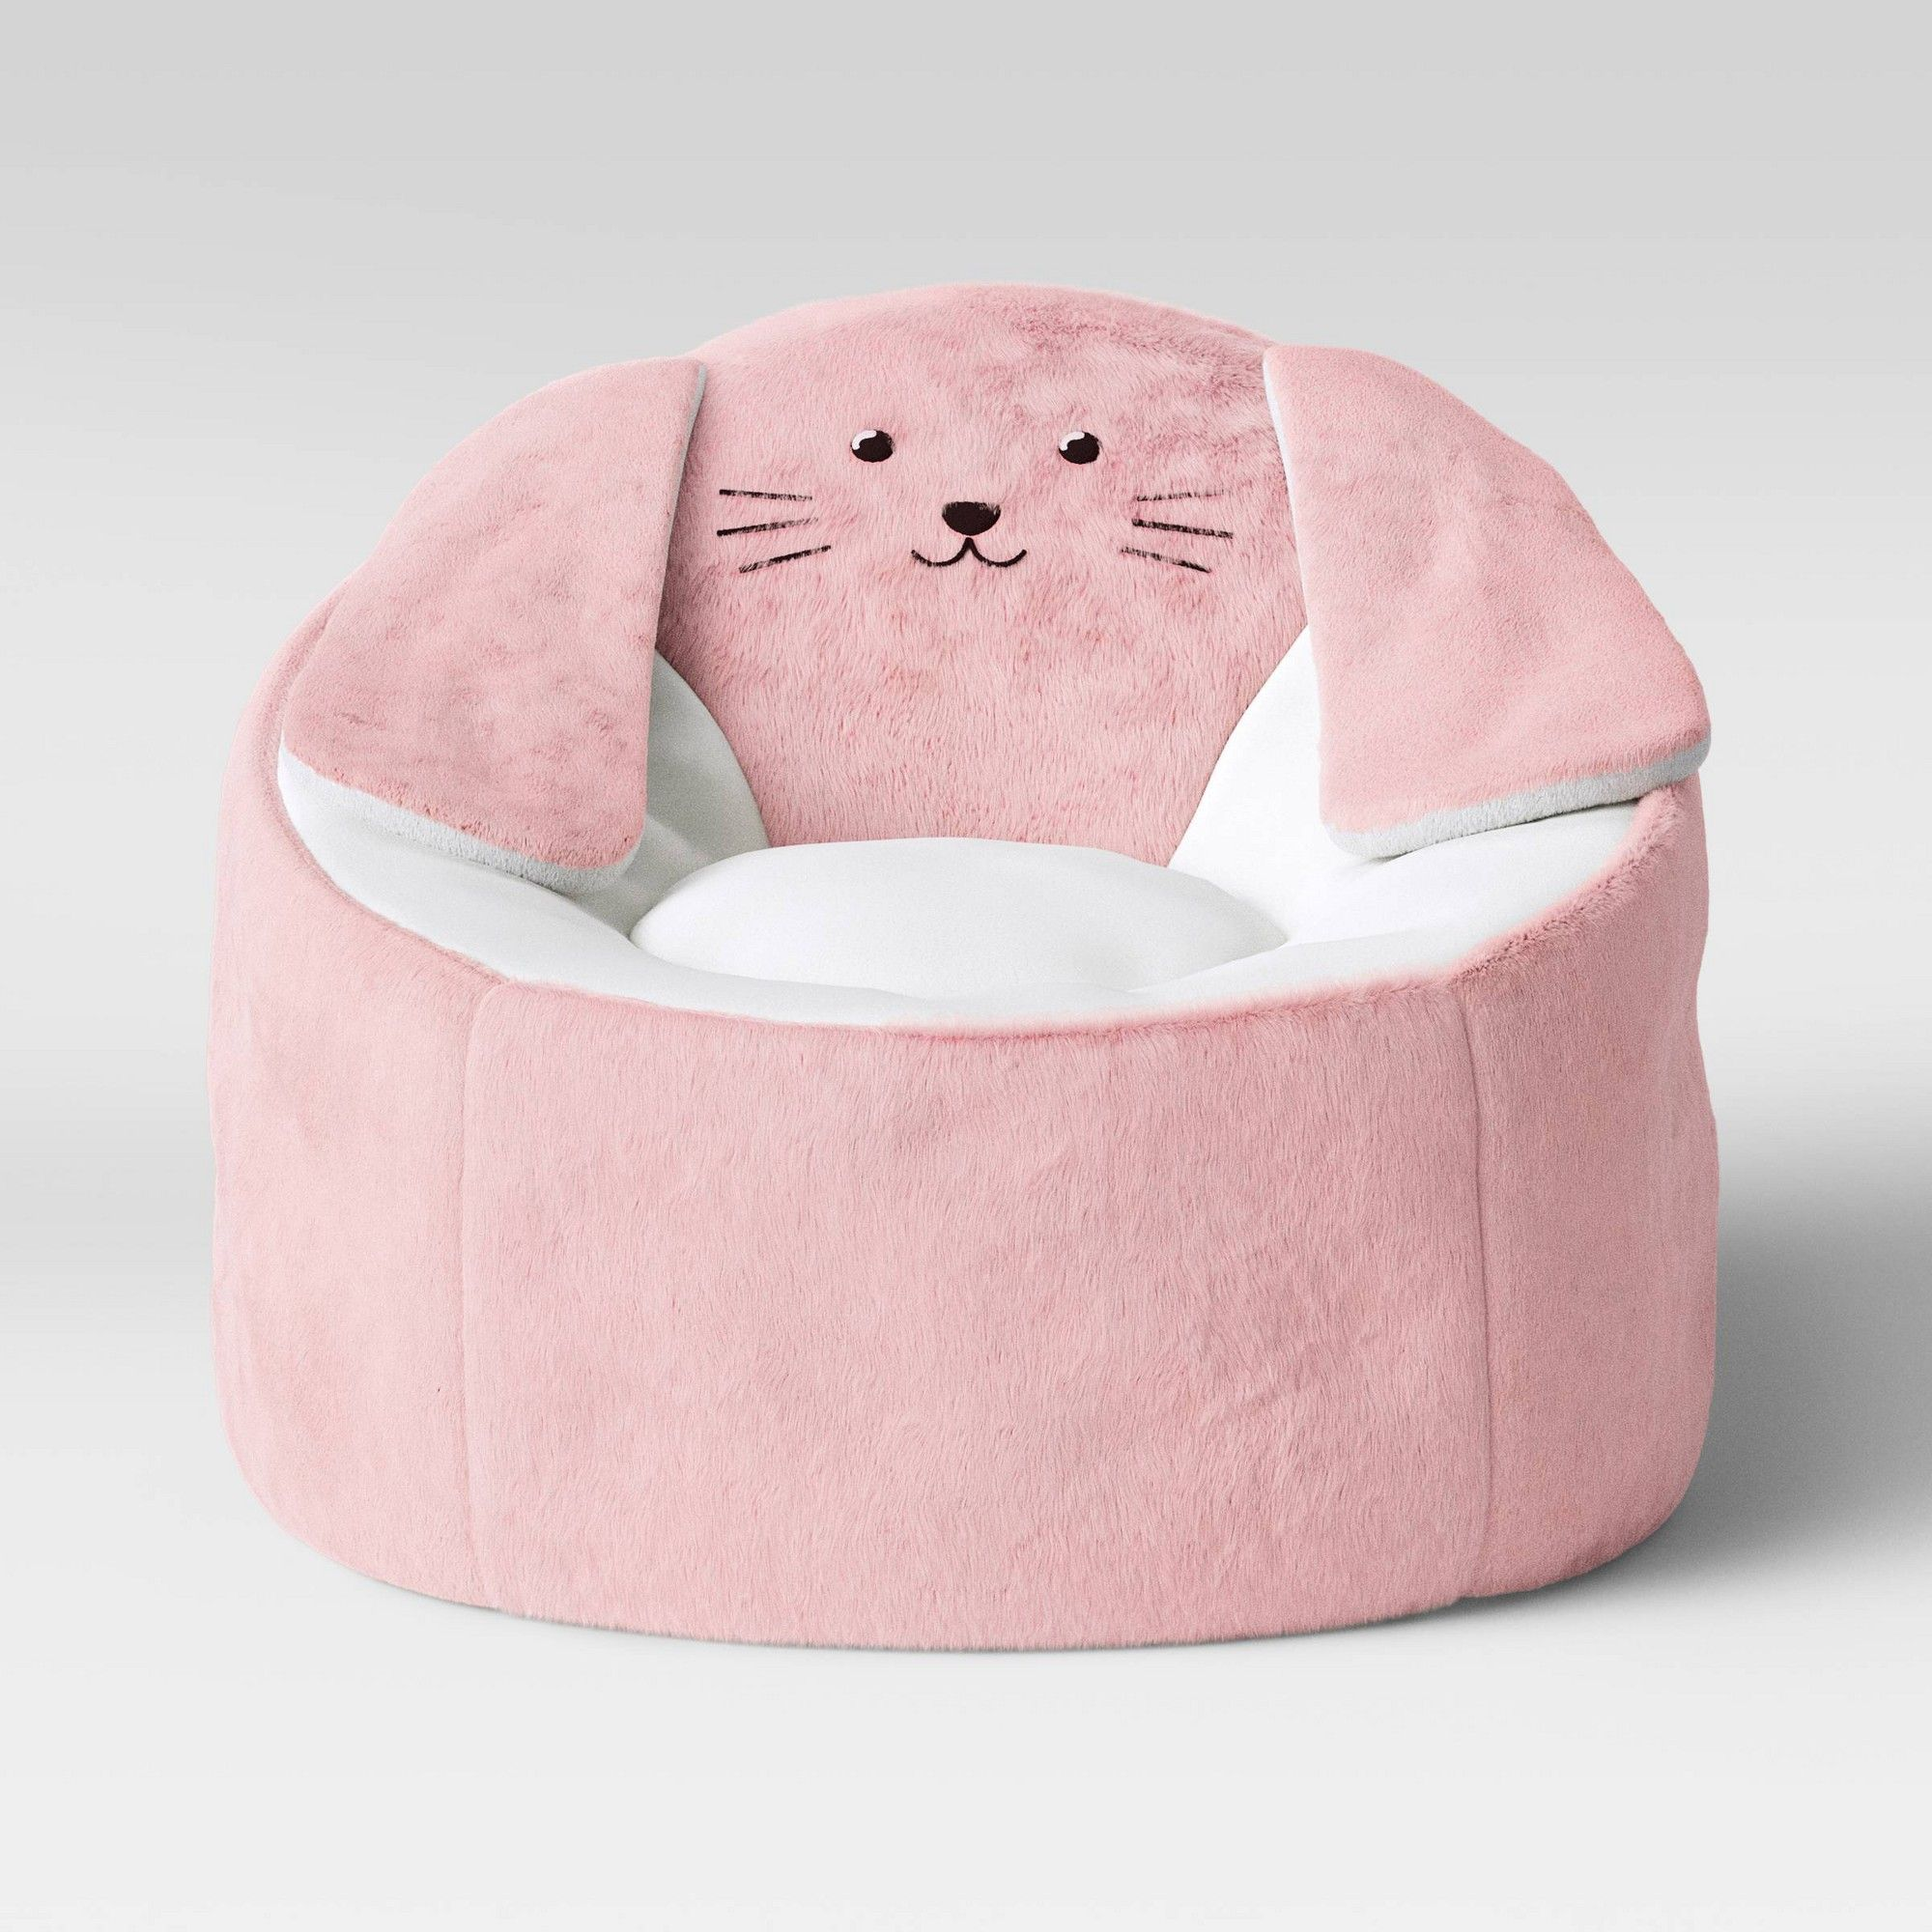 Kids Character Bean Bag Chair Bunny Pink Pillowfort Pink White Kids Character Bean Bag Chair Bean Bag Chair Pink Bean Bag Fuzzy Bean Bag Chair